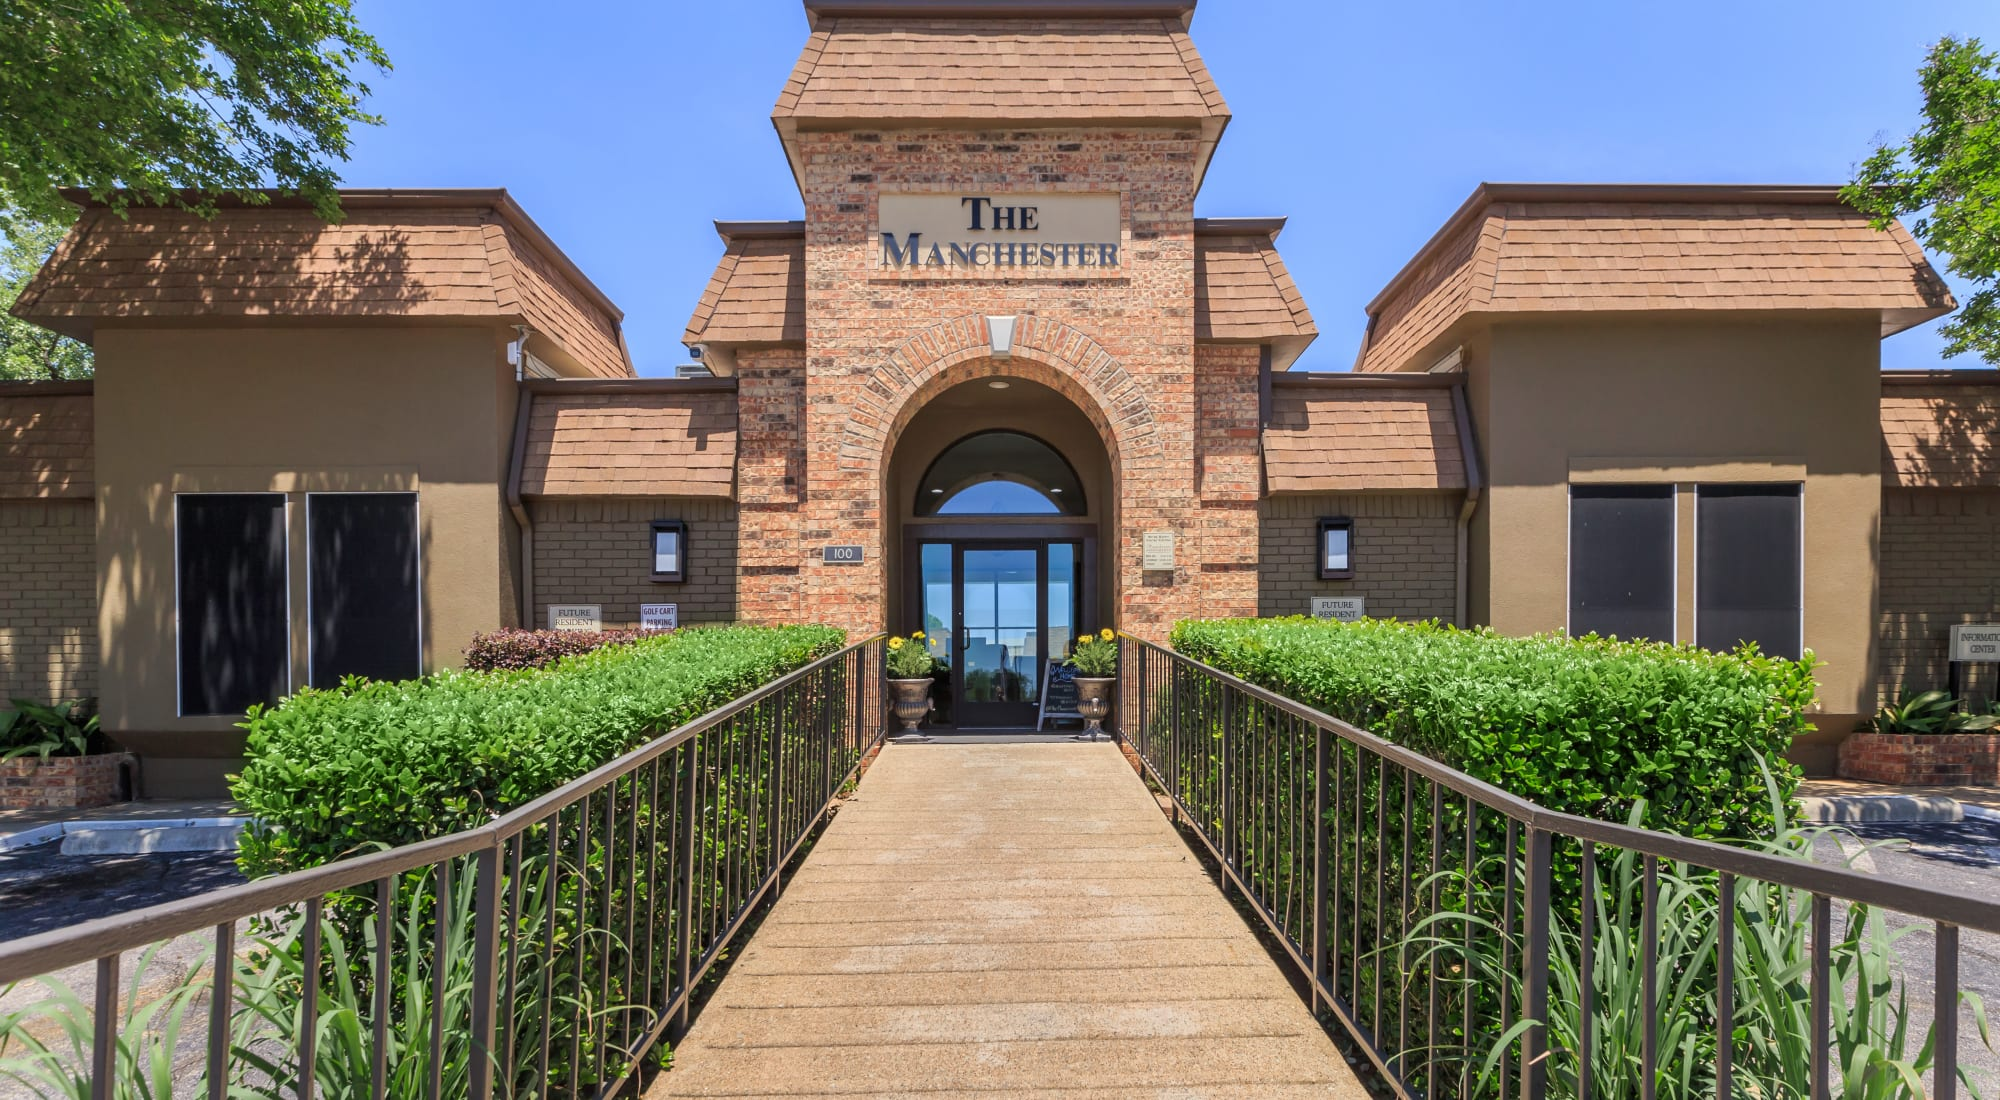 Schedule a tour of The Manchester Apartments in Euless, Texas